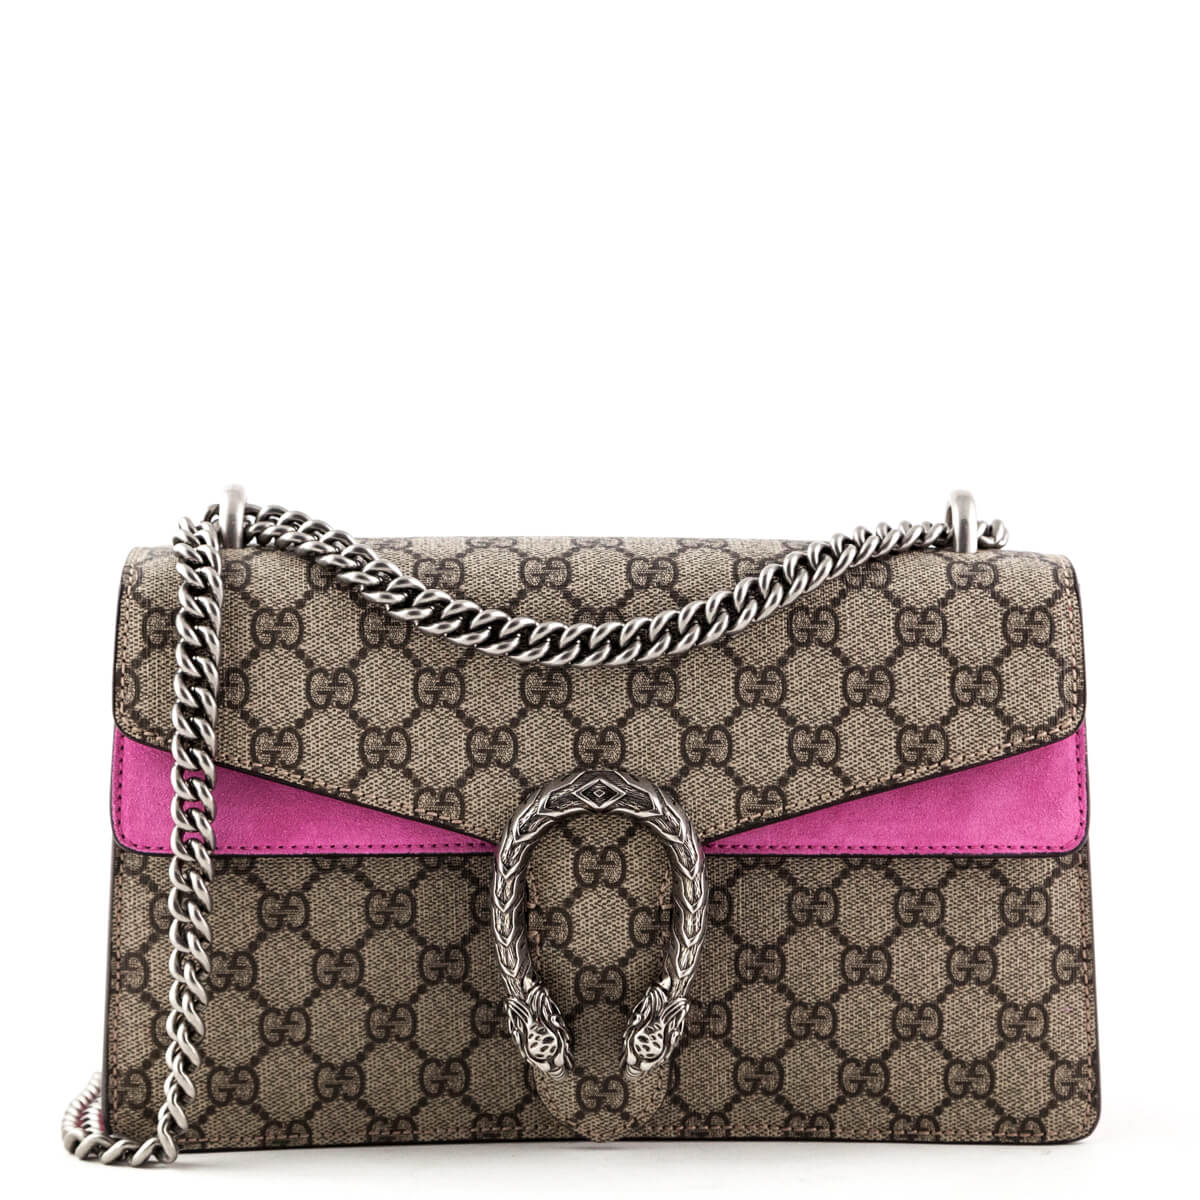 0fa804c6d47 Gucci GG Canvas Pink Suede Small Dionysus Bag - LOVE that BAG - Preowned  Authentic Designer ...